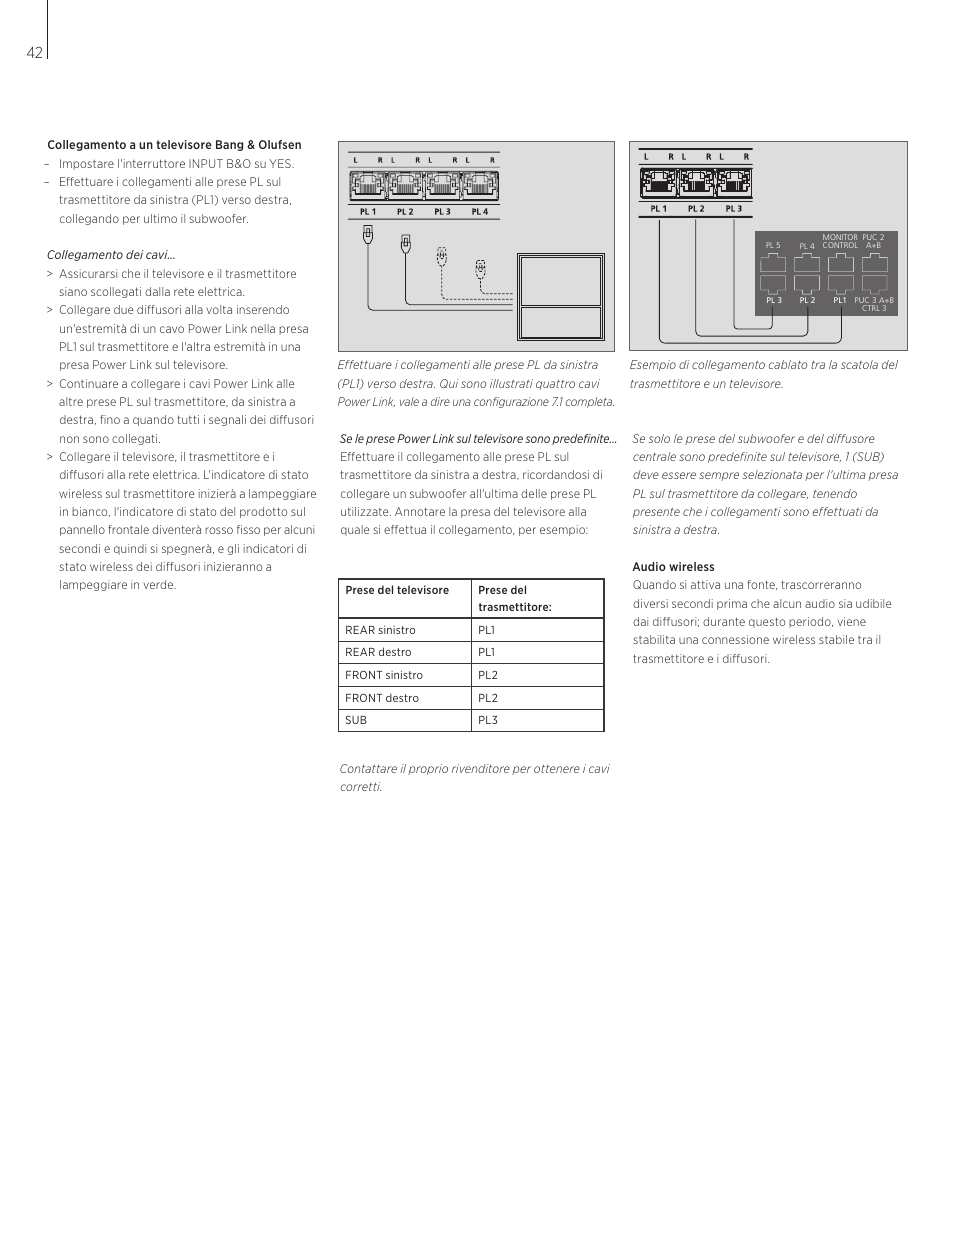 bang olufsen beolab transmitter 1 user guide user manual page 42 rh manualsdir com edi user guide User Guide Icon